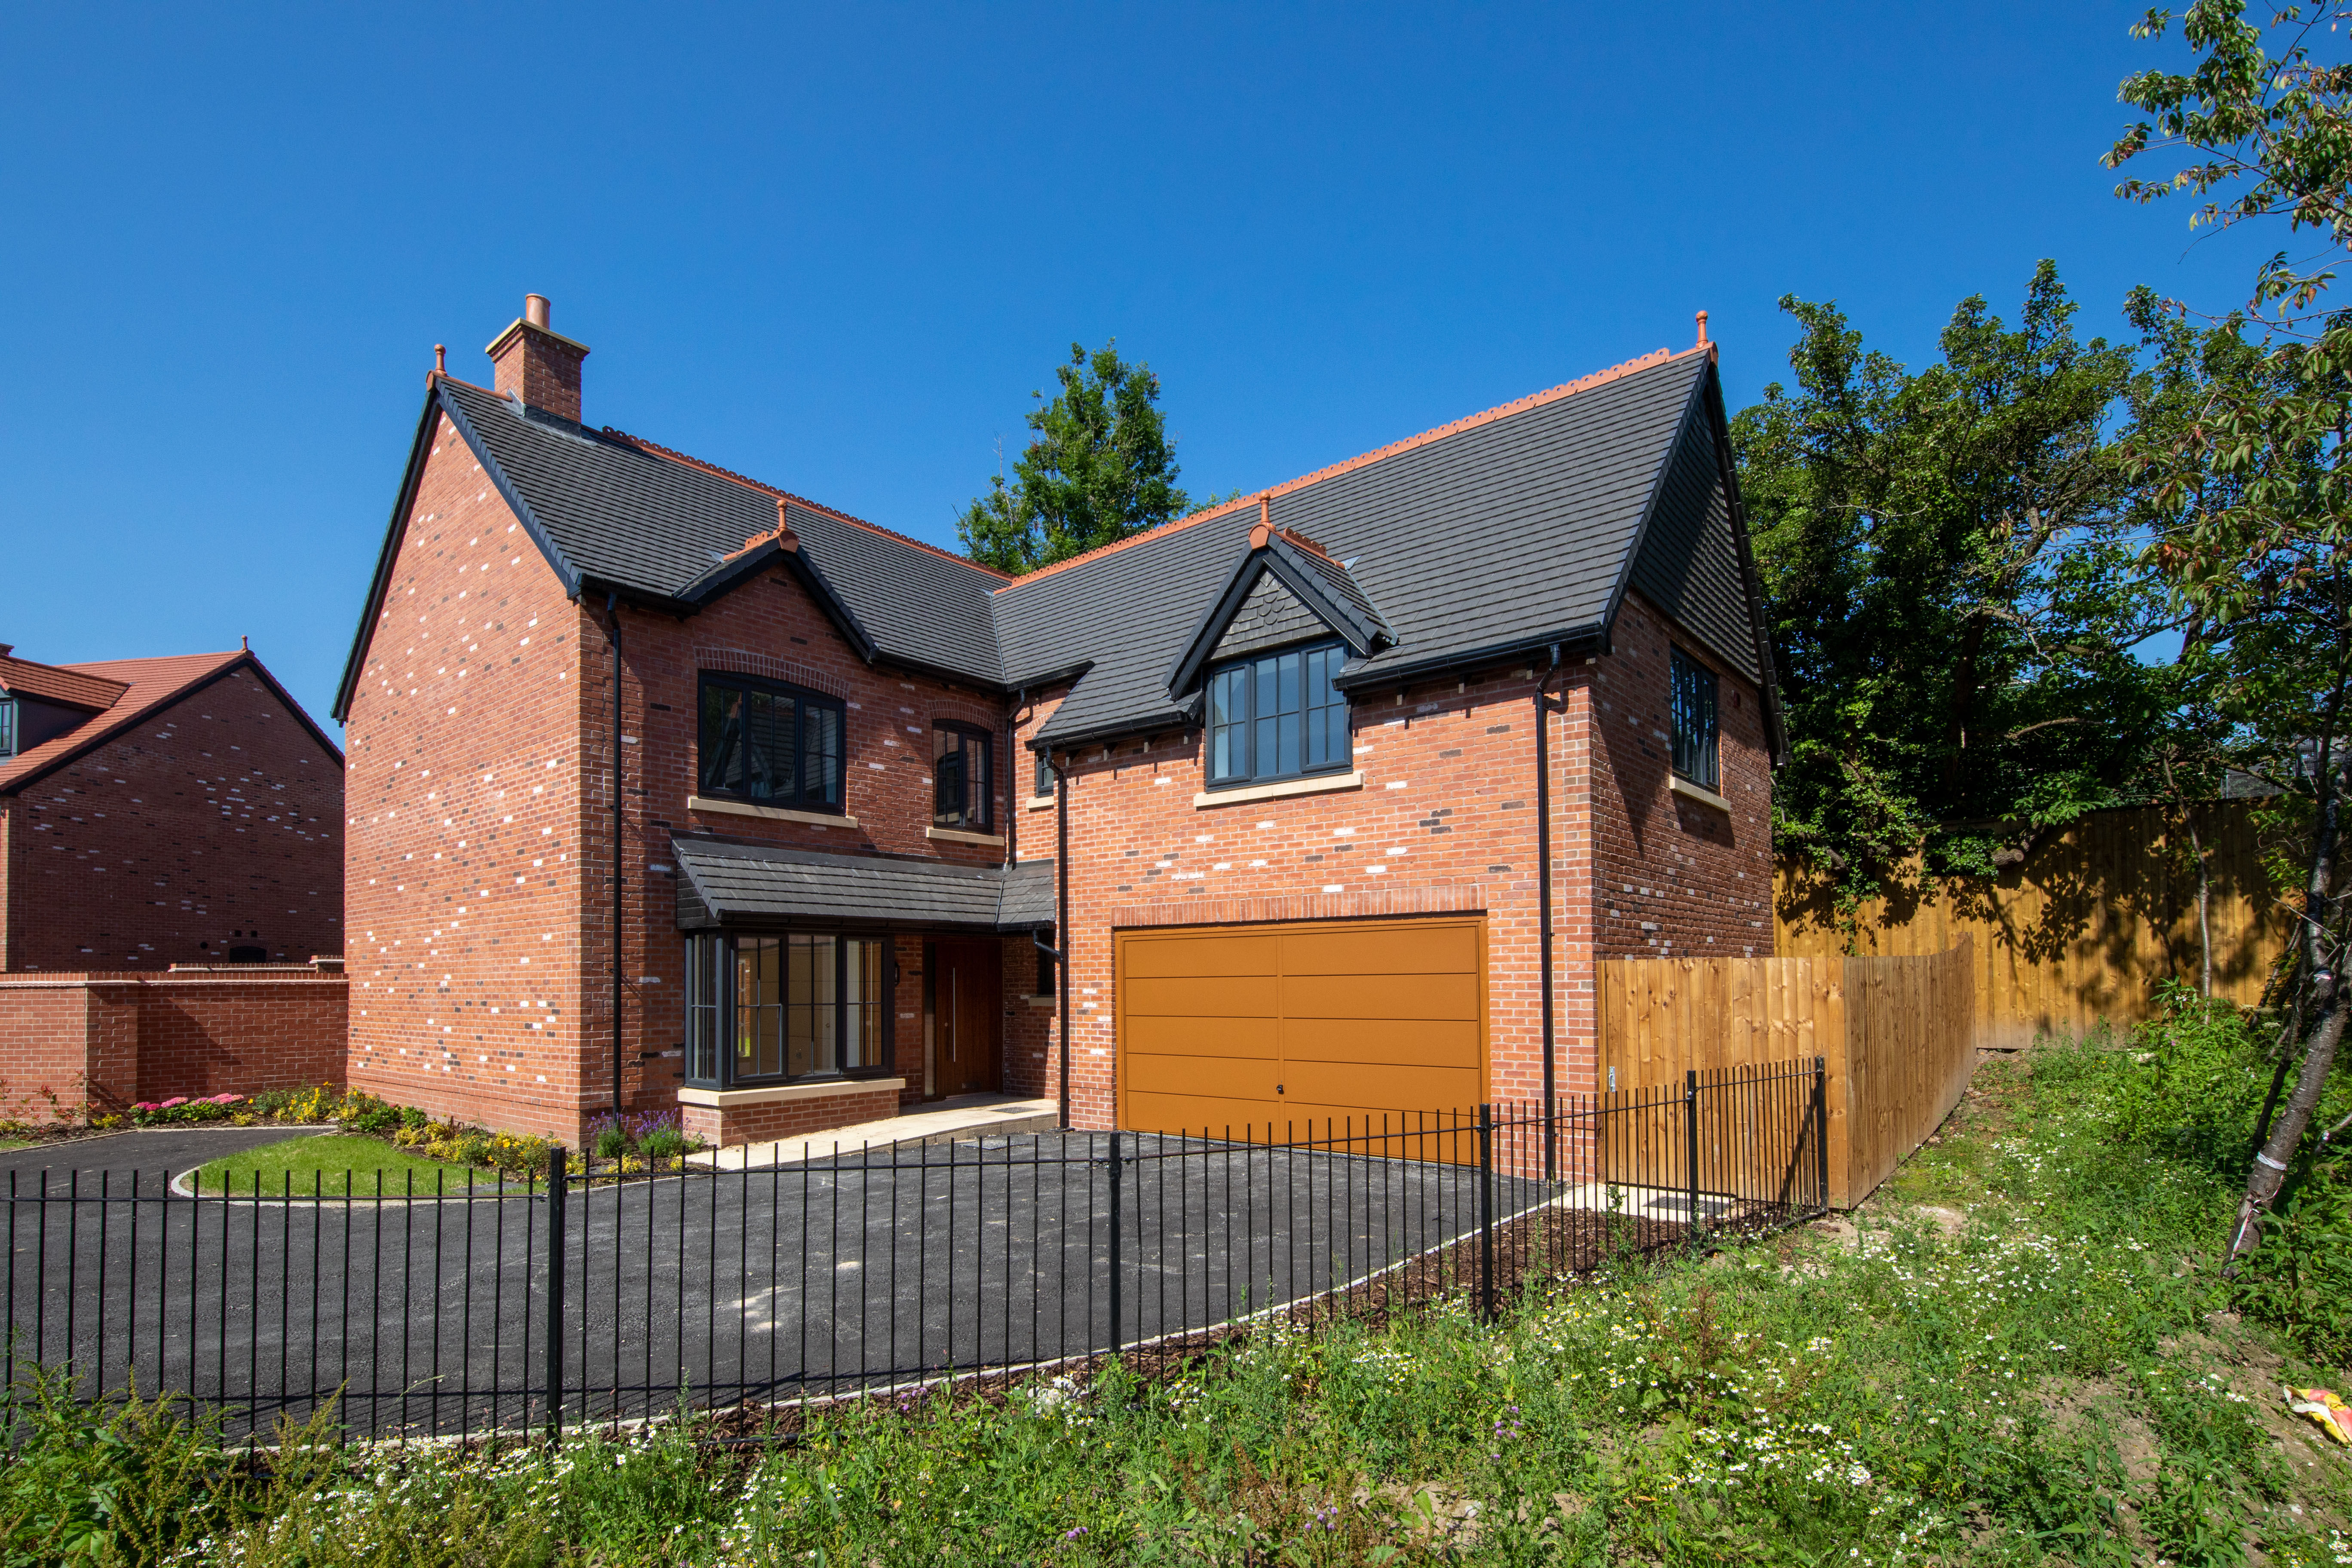 The Kershaw at Saltersford Gardens in Holmes Chapel